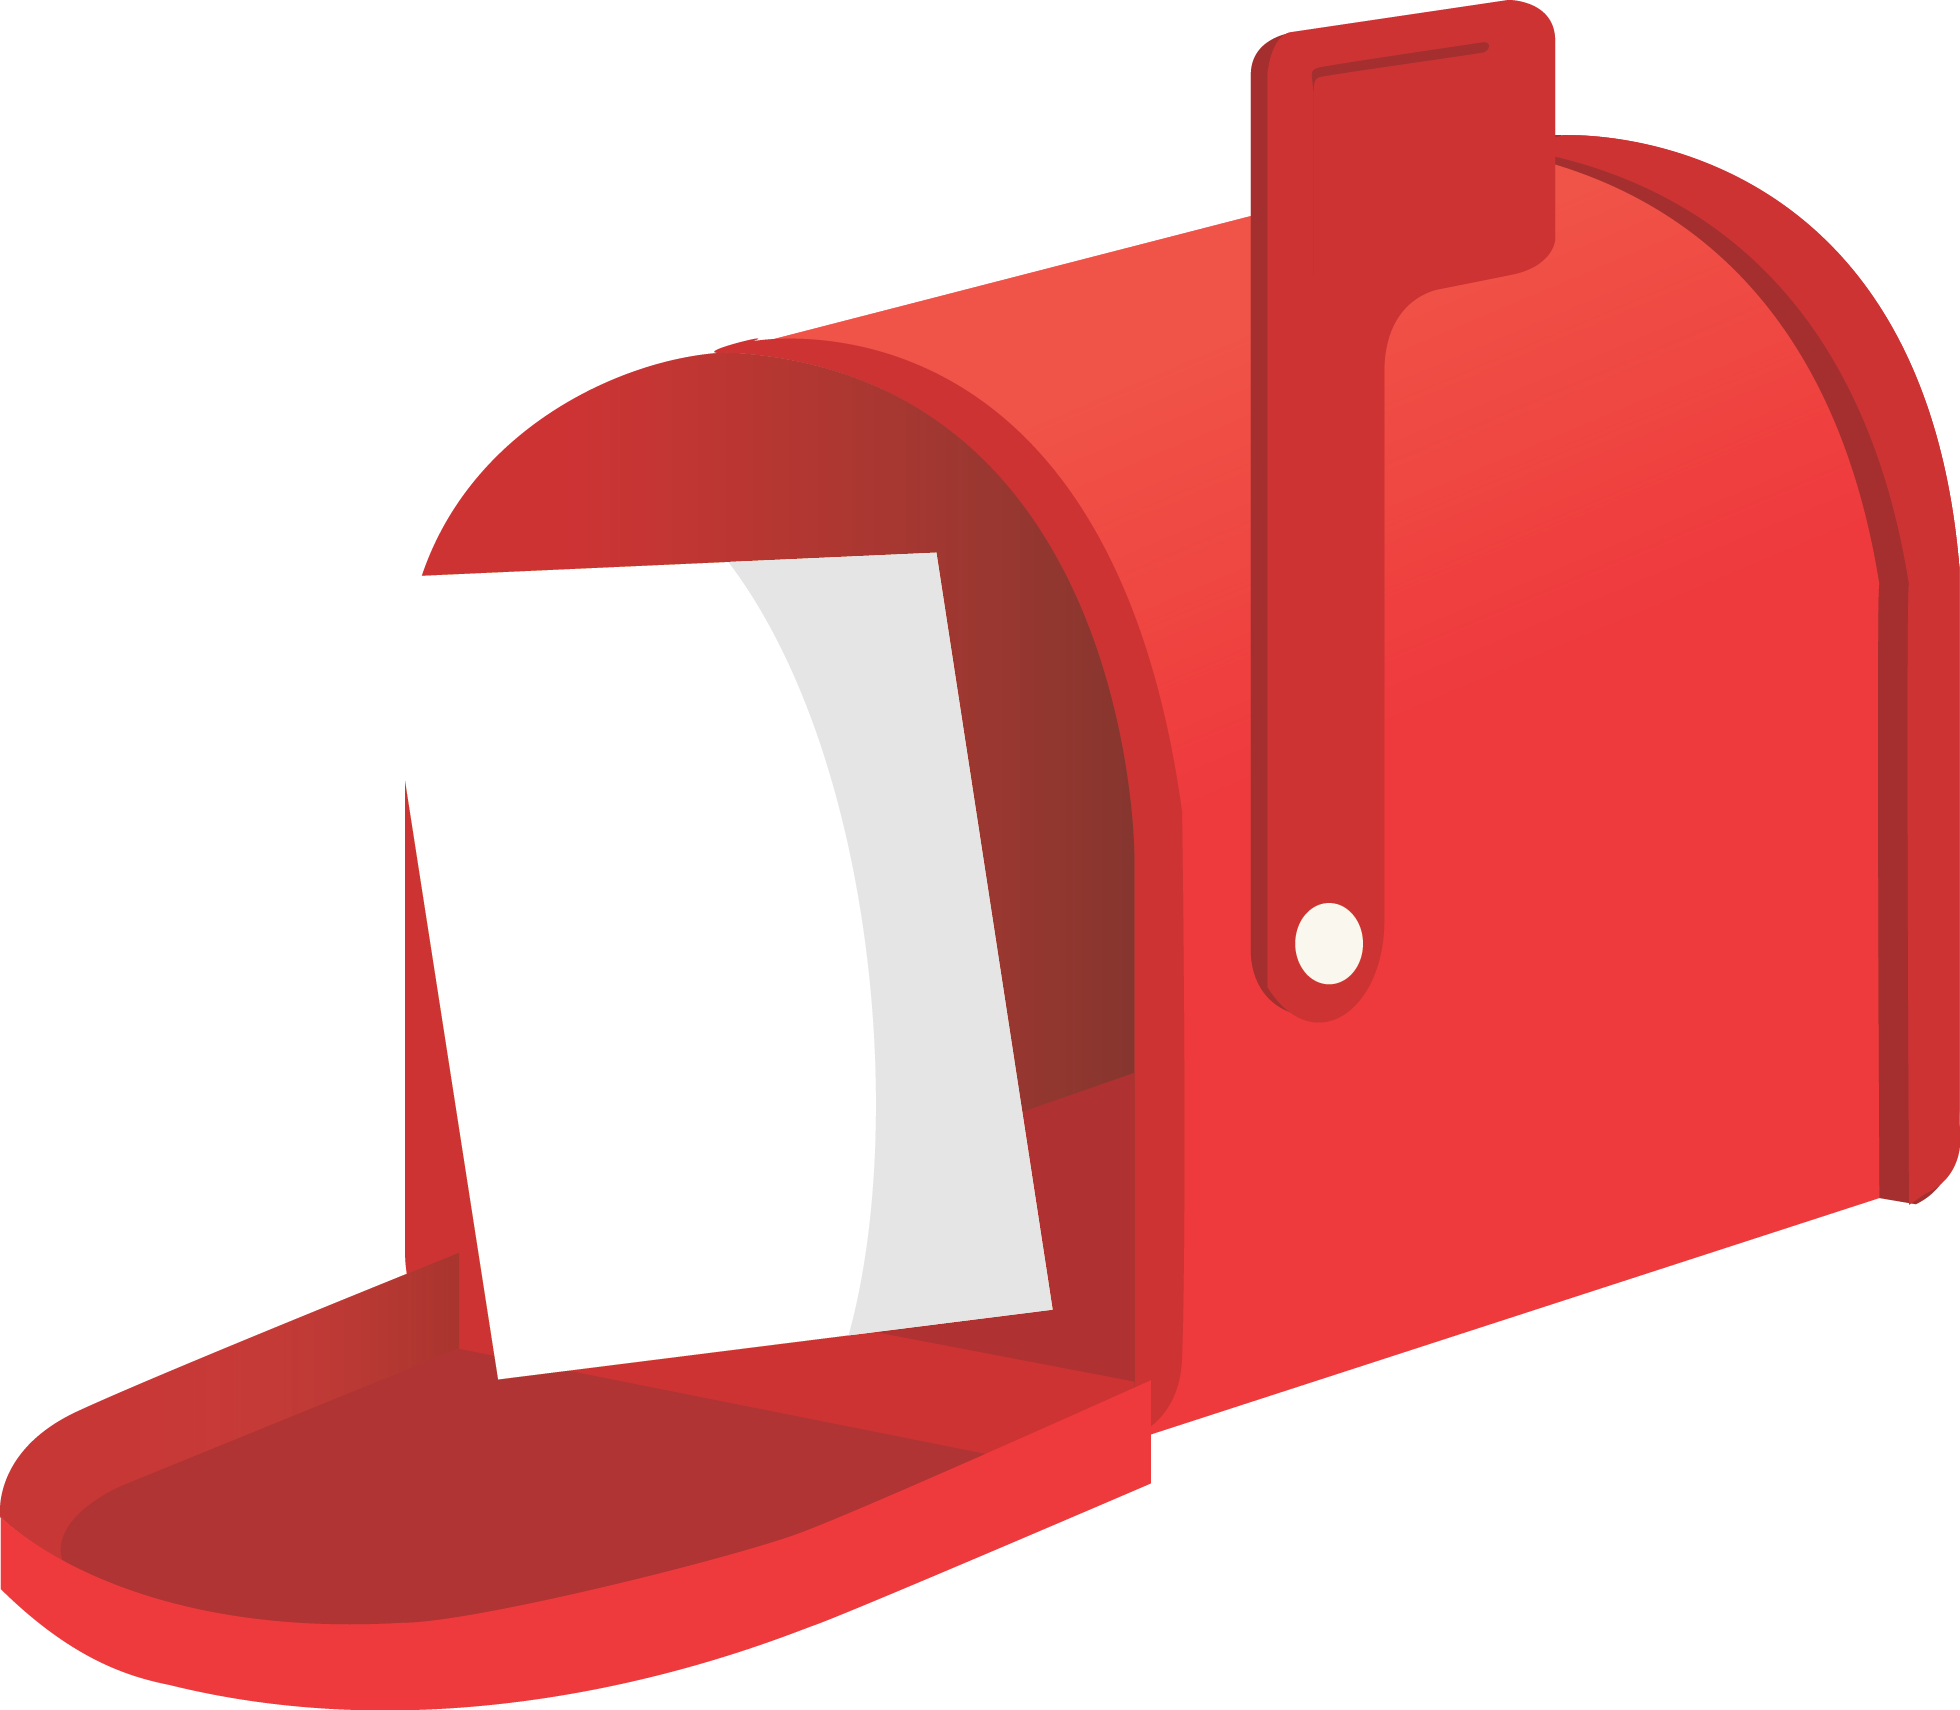 Mailbox clipart flat. Png transparent images free